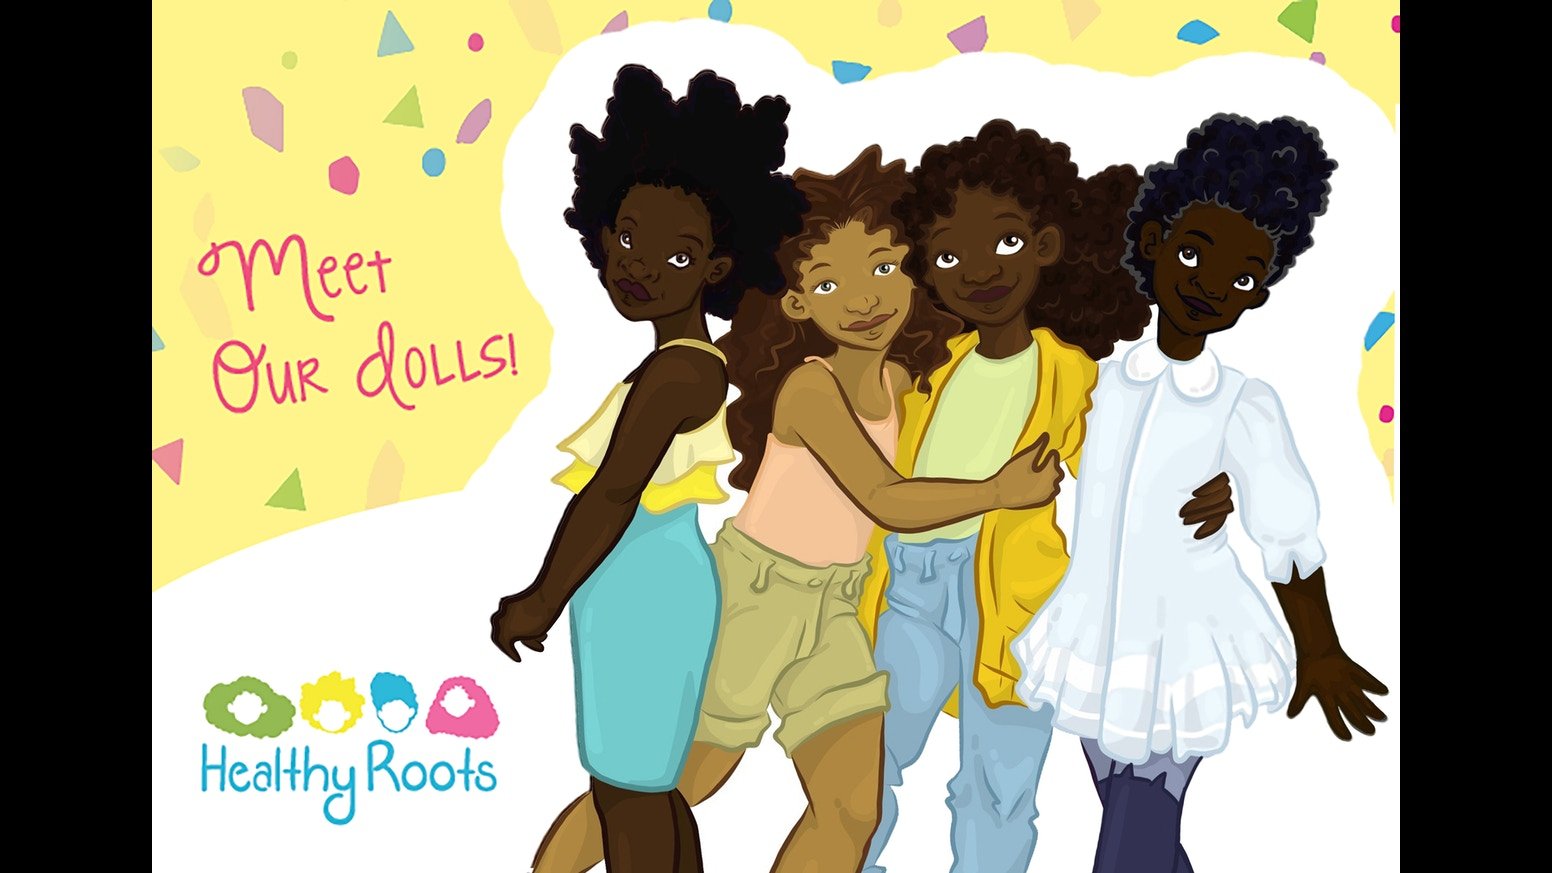 Co color by number girls - Healthy Roots Is A Toy Company That Teaches Natural Hair Care To Young Girls Of Color